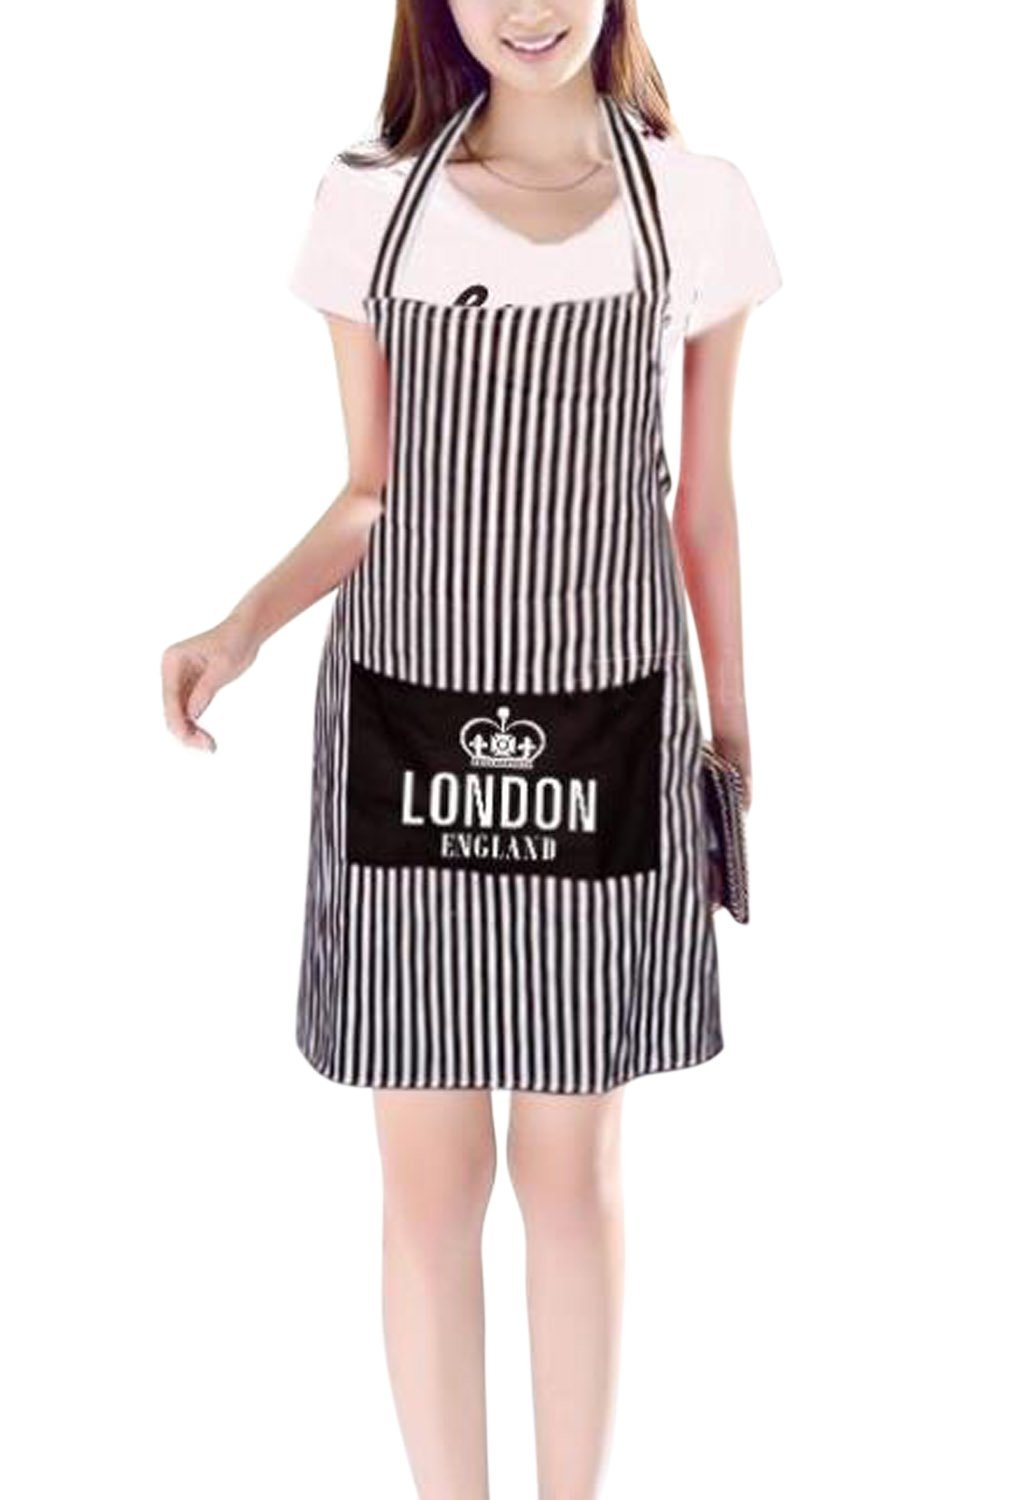 JINTN Men Women Home Kitchen Chef Apron with Pockets Breathable Cotton Stripe Bib Restaurant Waitresses Apron for for Cooking, Baking, Gardening, BBQ-Natural